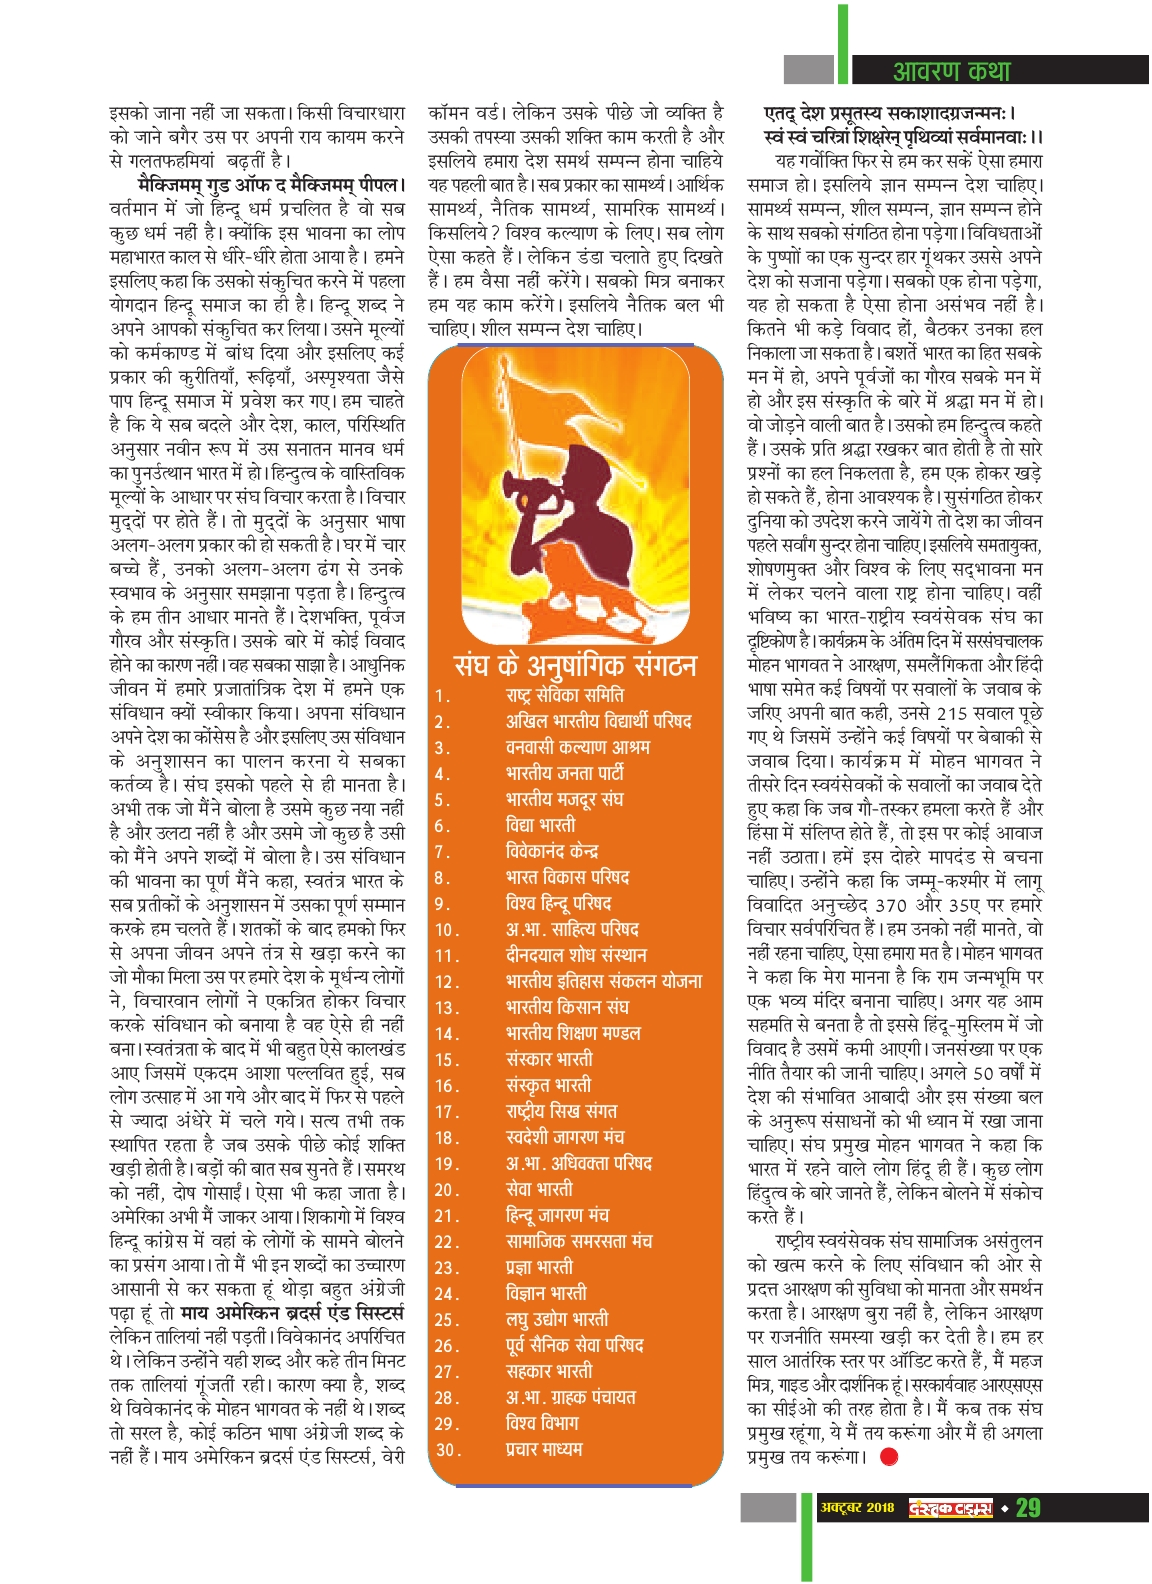 Dastak Times Final Sept-Oct31